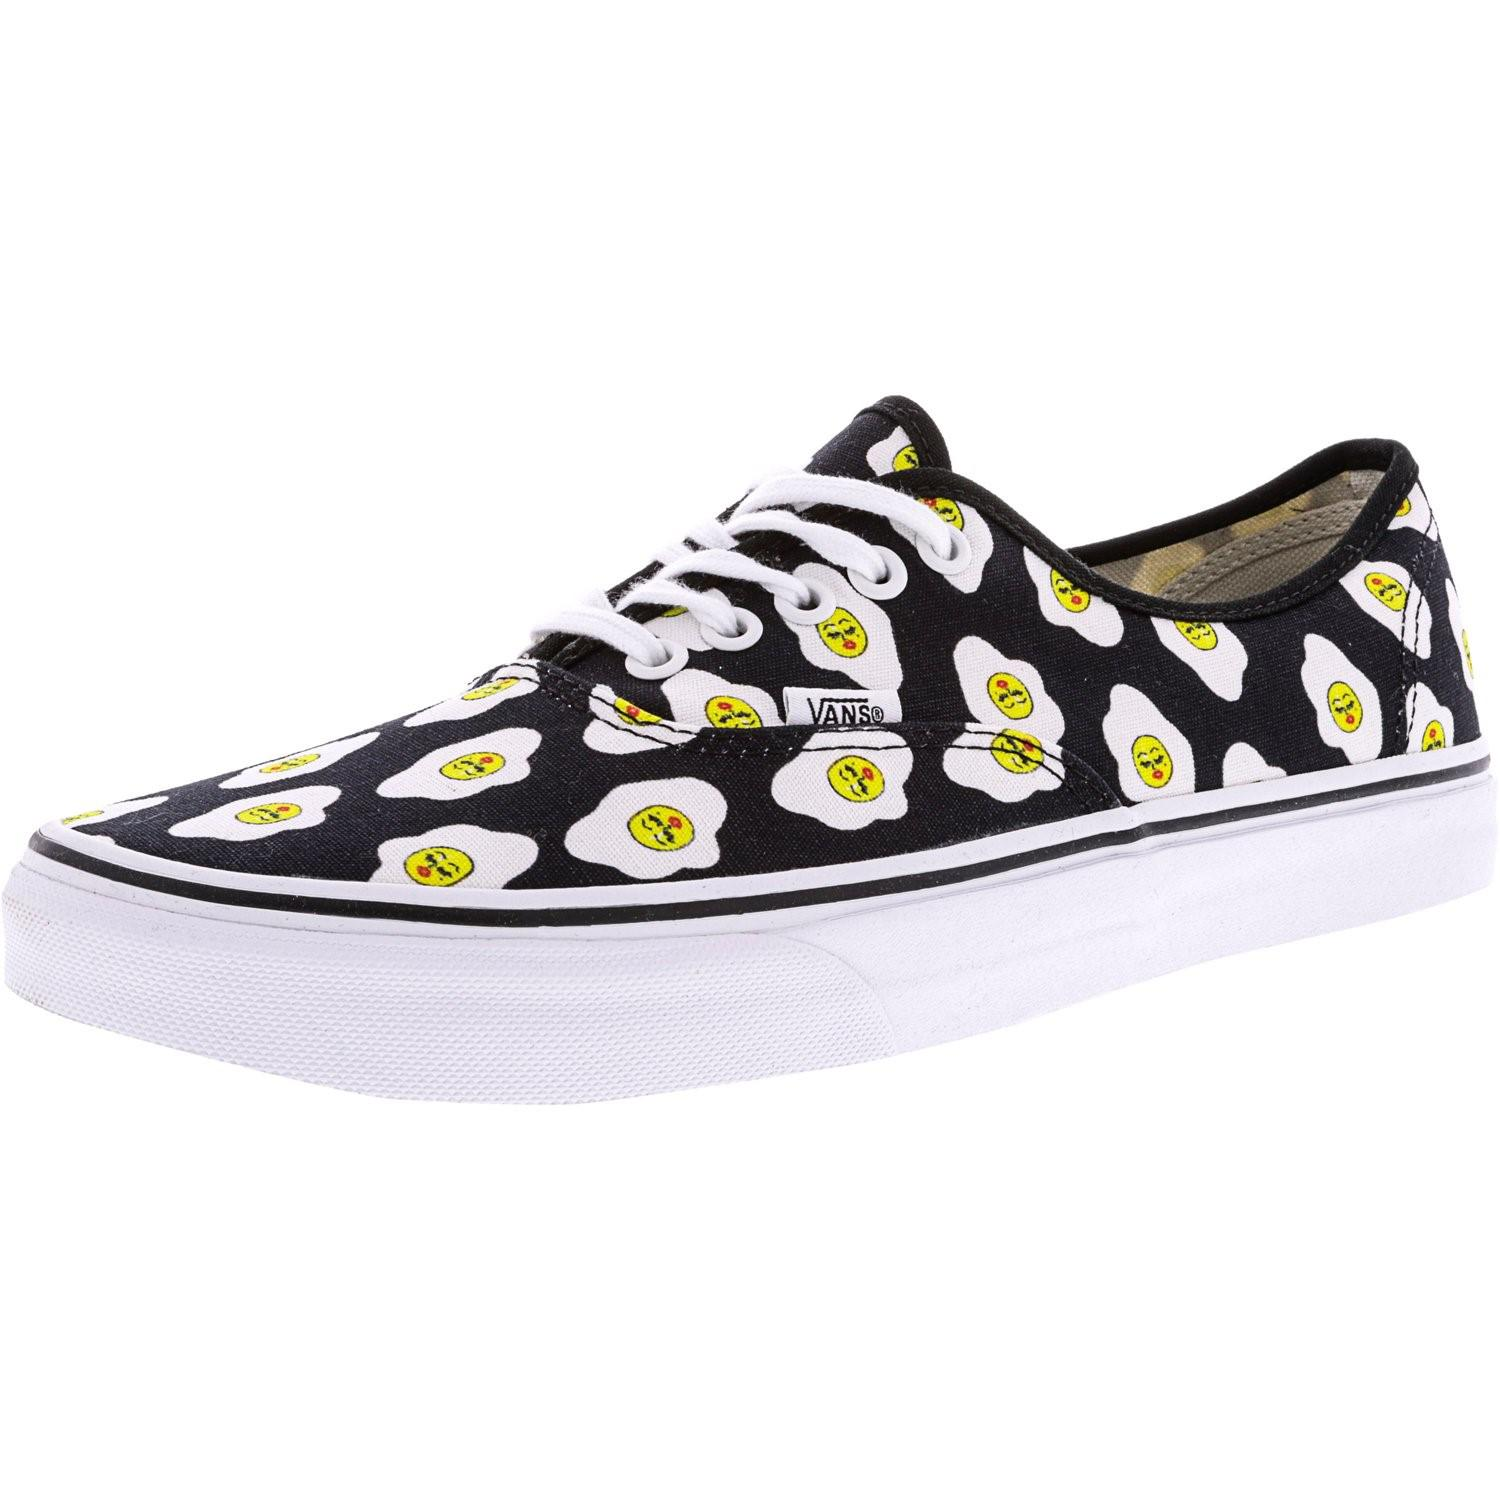 95951663d02b4a Lyst - Vans Authentic Kendra Dandy Ankle-high Canvas Skateboarding ...